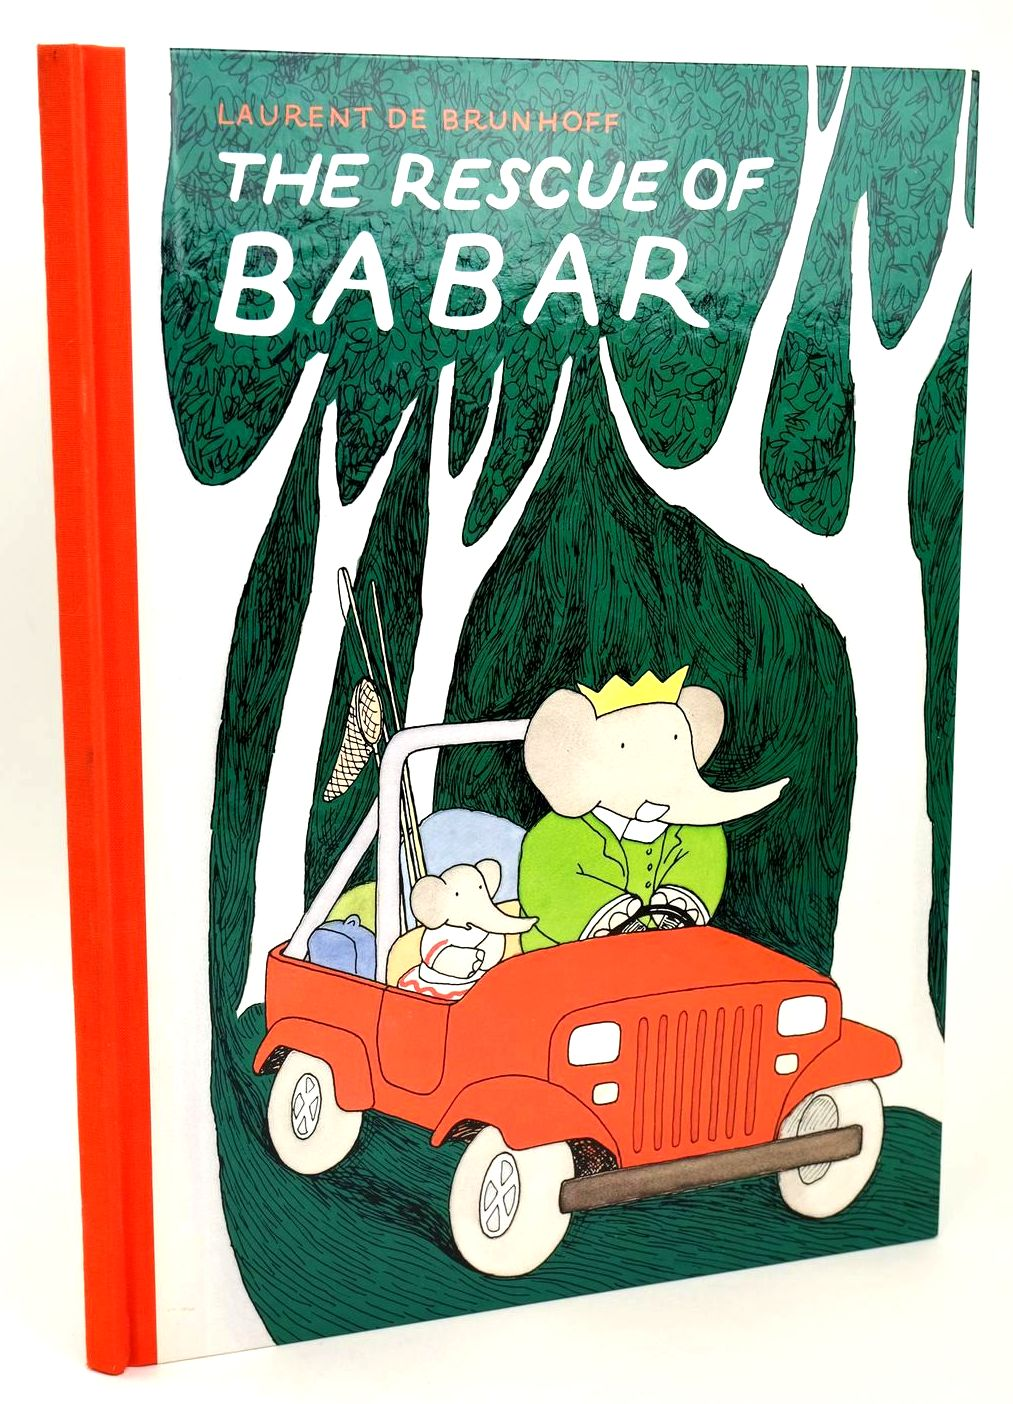 Photo of THE RESCUE OF BABAR written by De Brunhoff, Laurent illustrated by De Brunhoff, Laurent published by Methuen Children's Books Ltd. (STOCK CODE: 1318541)  for sale by Stella & Rose's Books